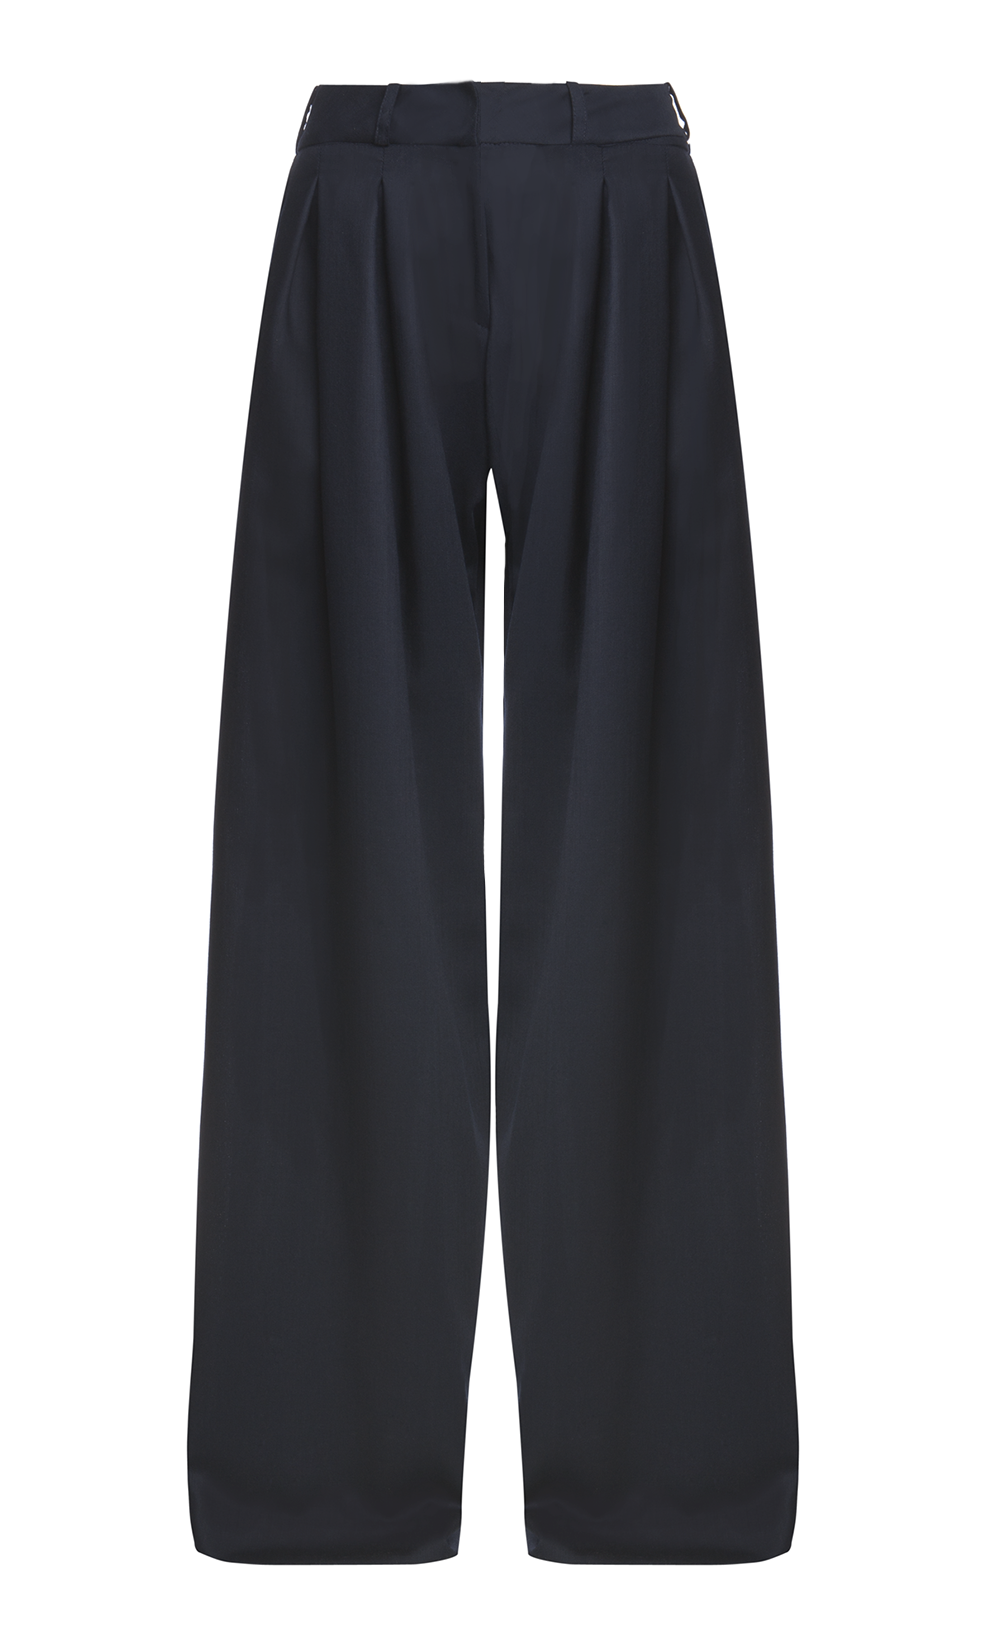 ALEXA NAVY TROUSER